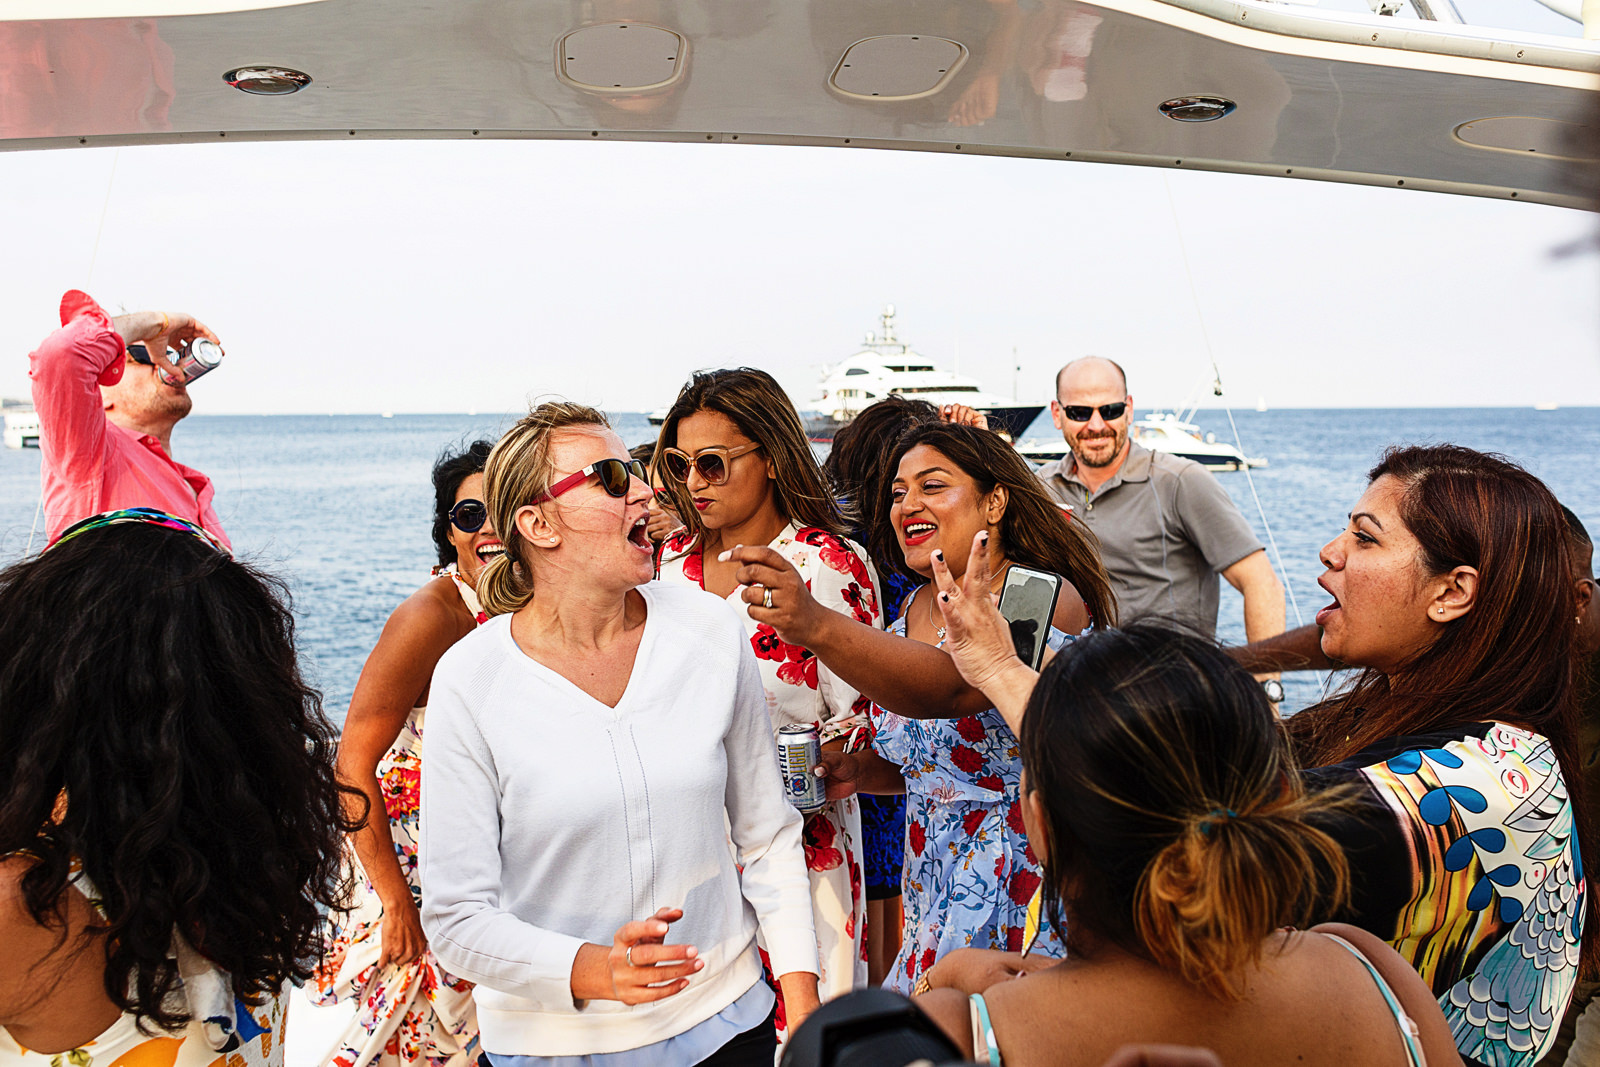 Group of people dancing and partying on the upper deck of a yacht